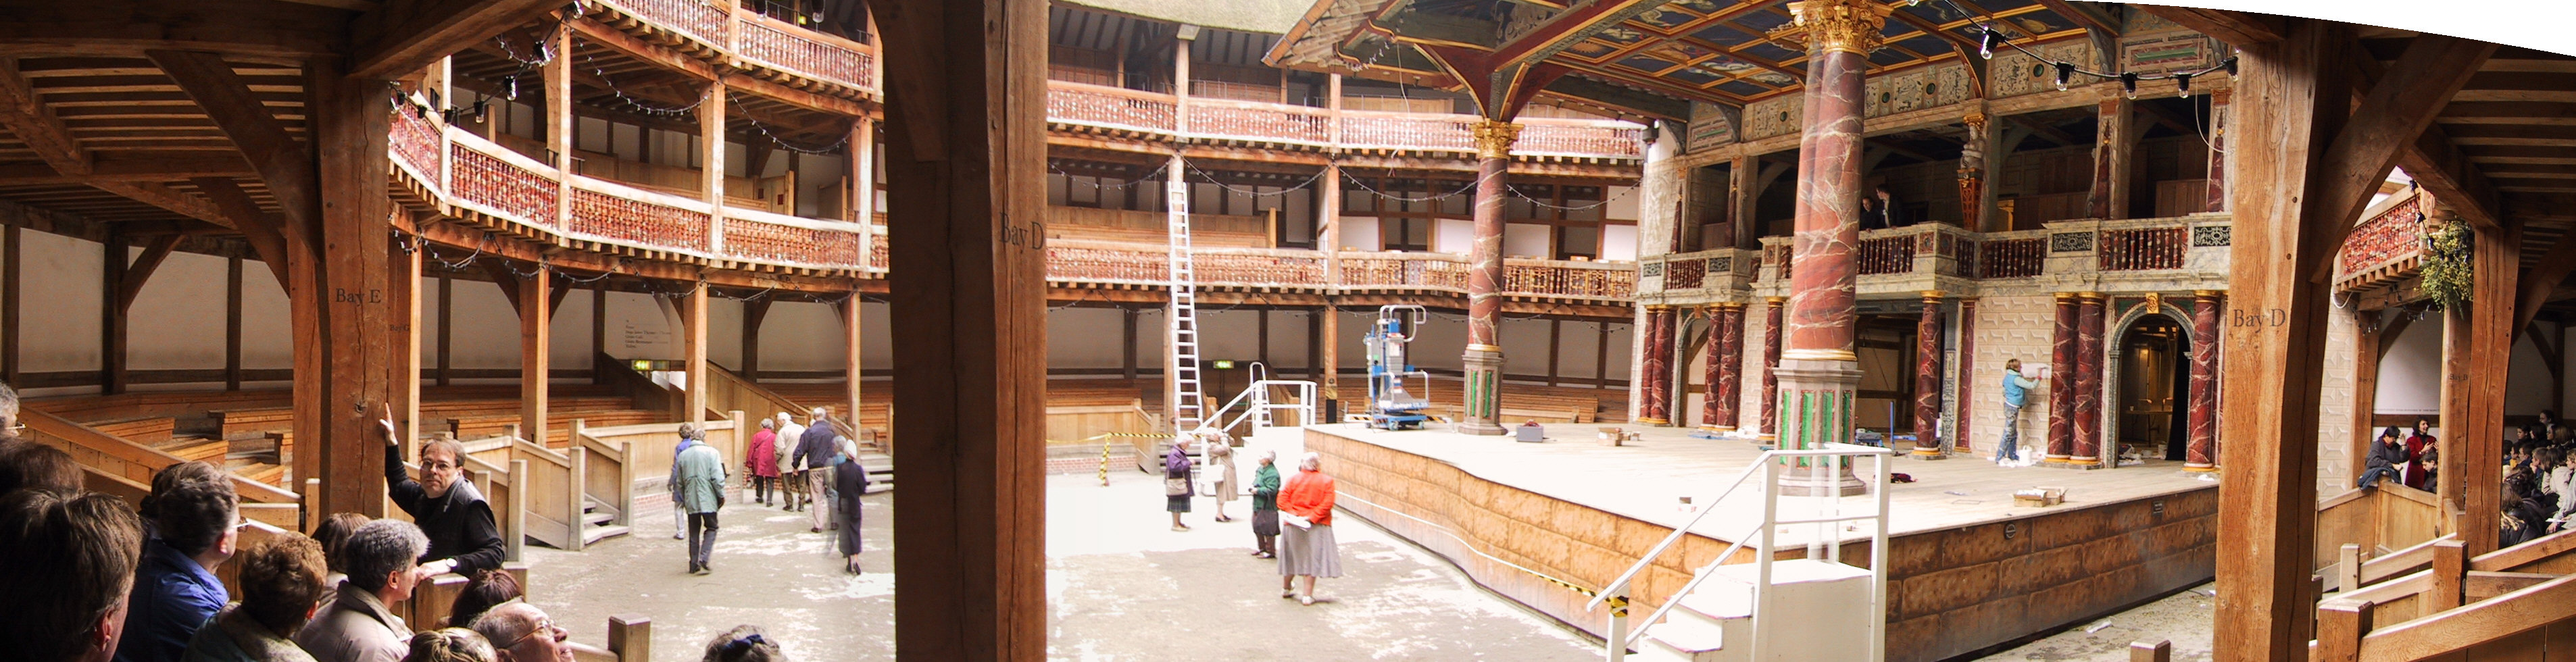 the globe theater essay A look at the history of the physical and sociological development of the modern theater, focusing on the globe theater and the involvement of william shakespeare.